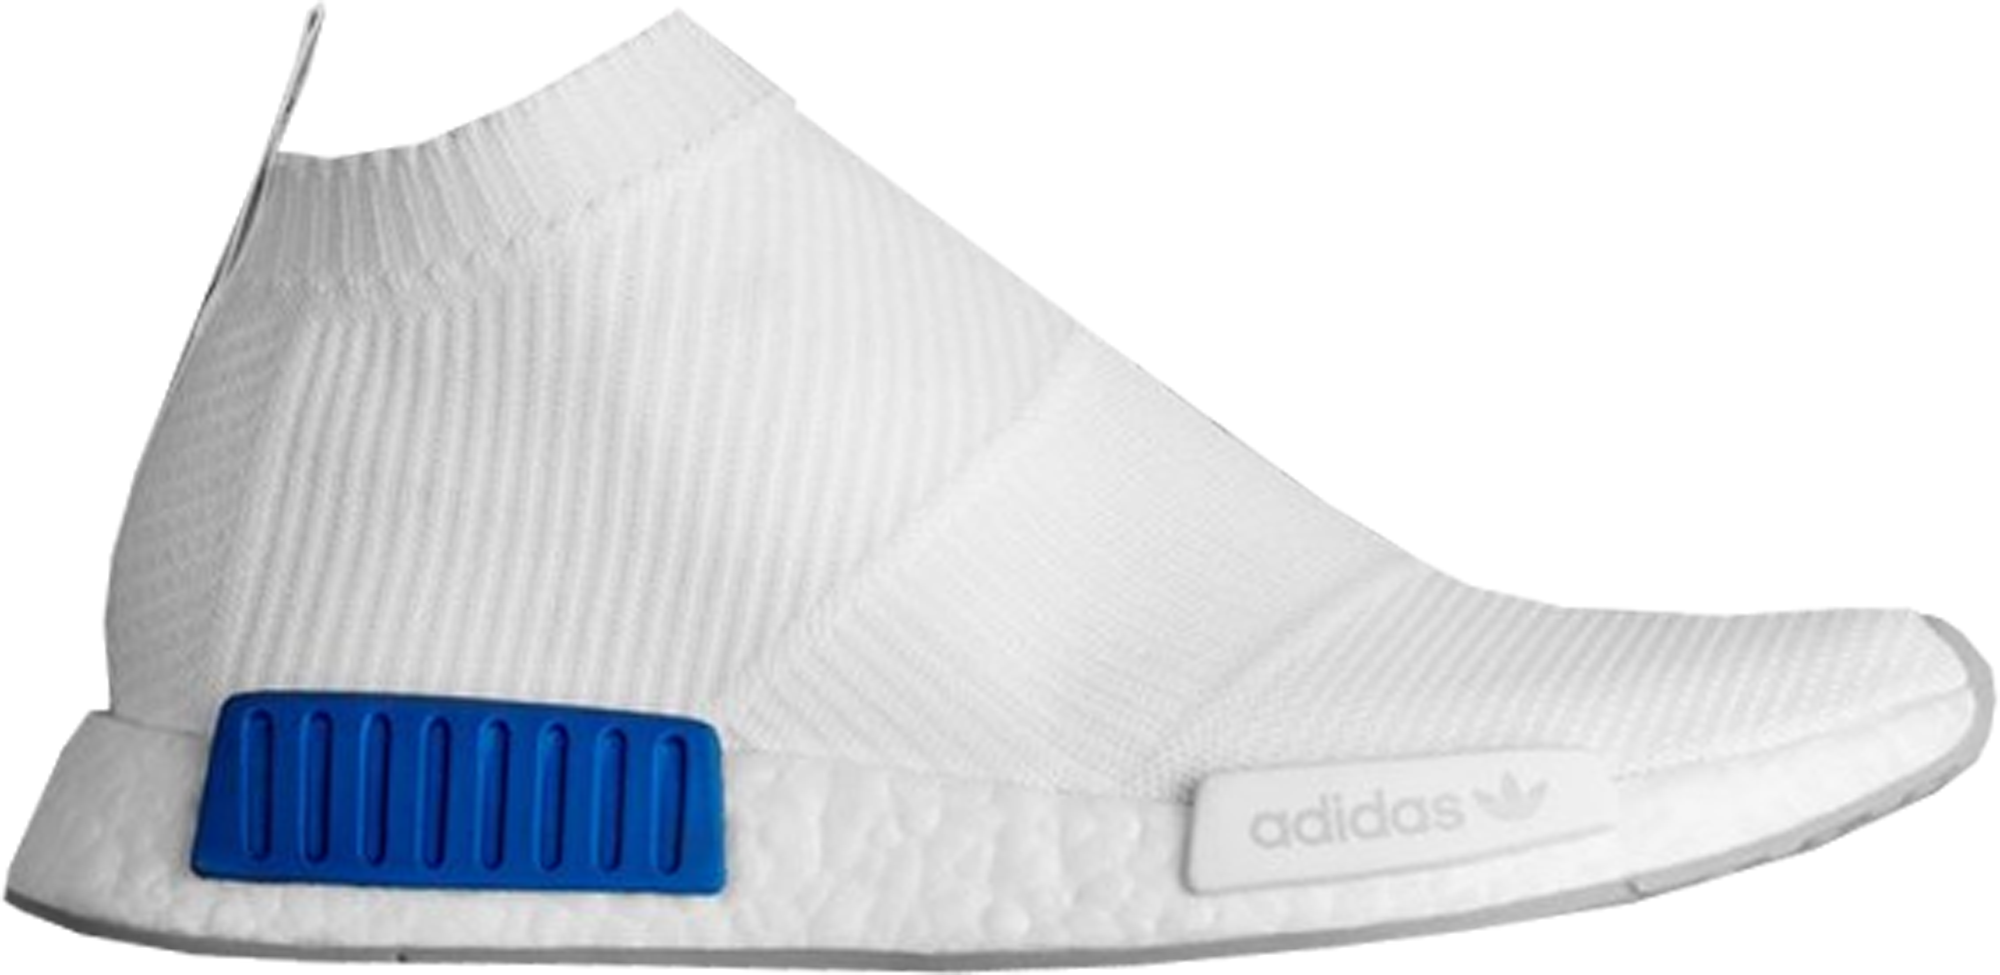 adidas nmd r1 primeknit Rock bottom Prices Camway Estate